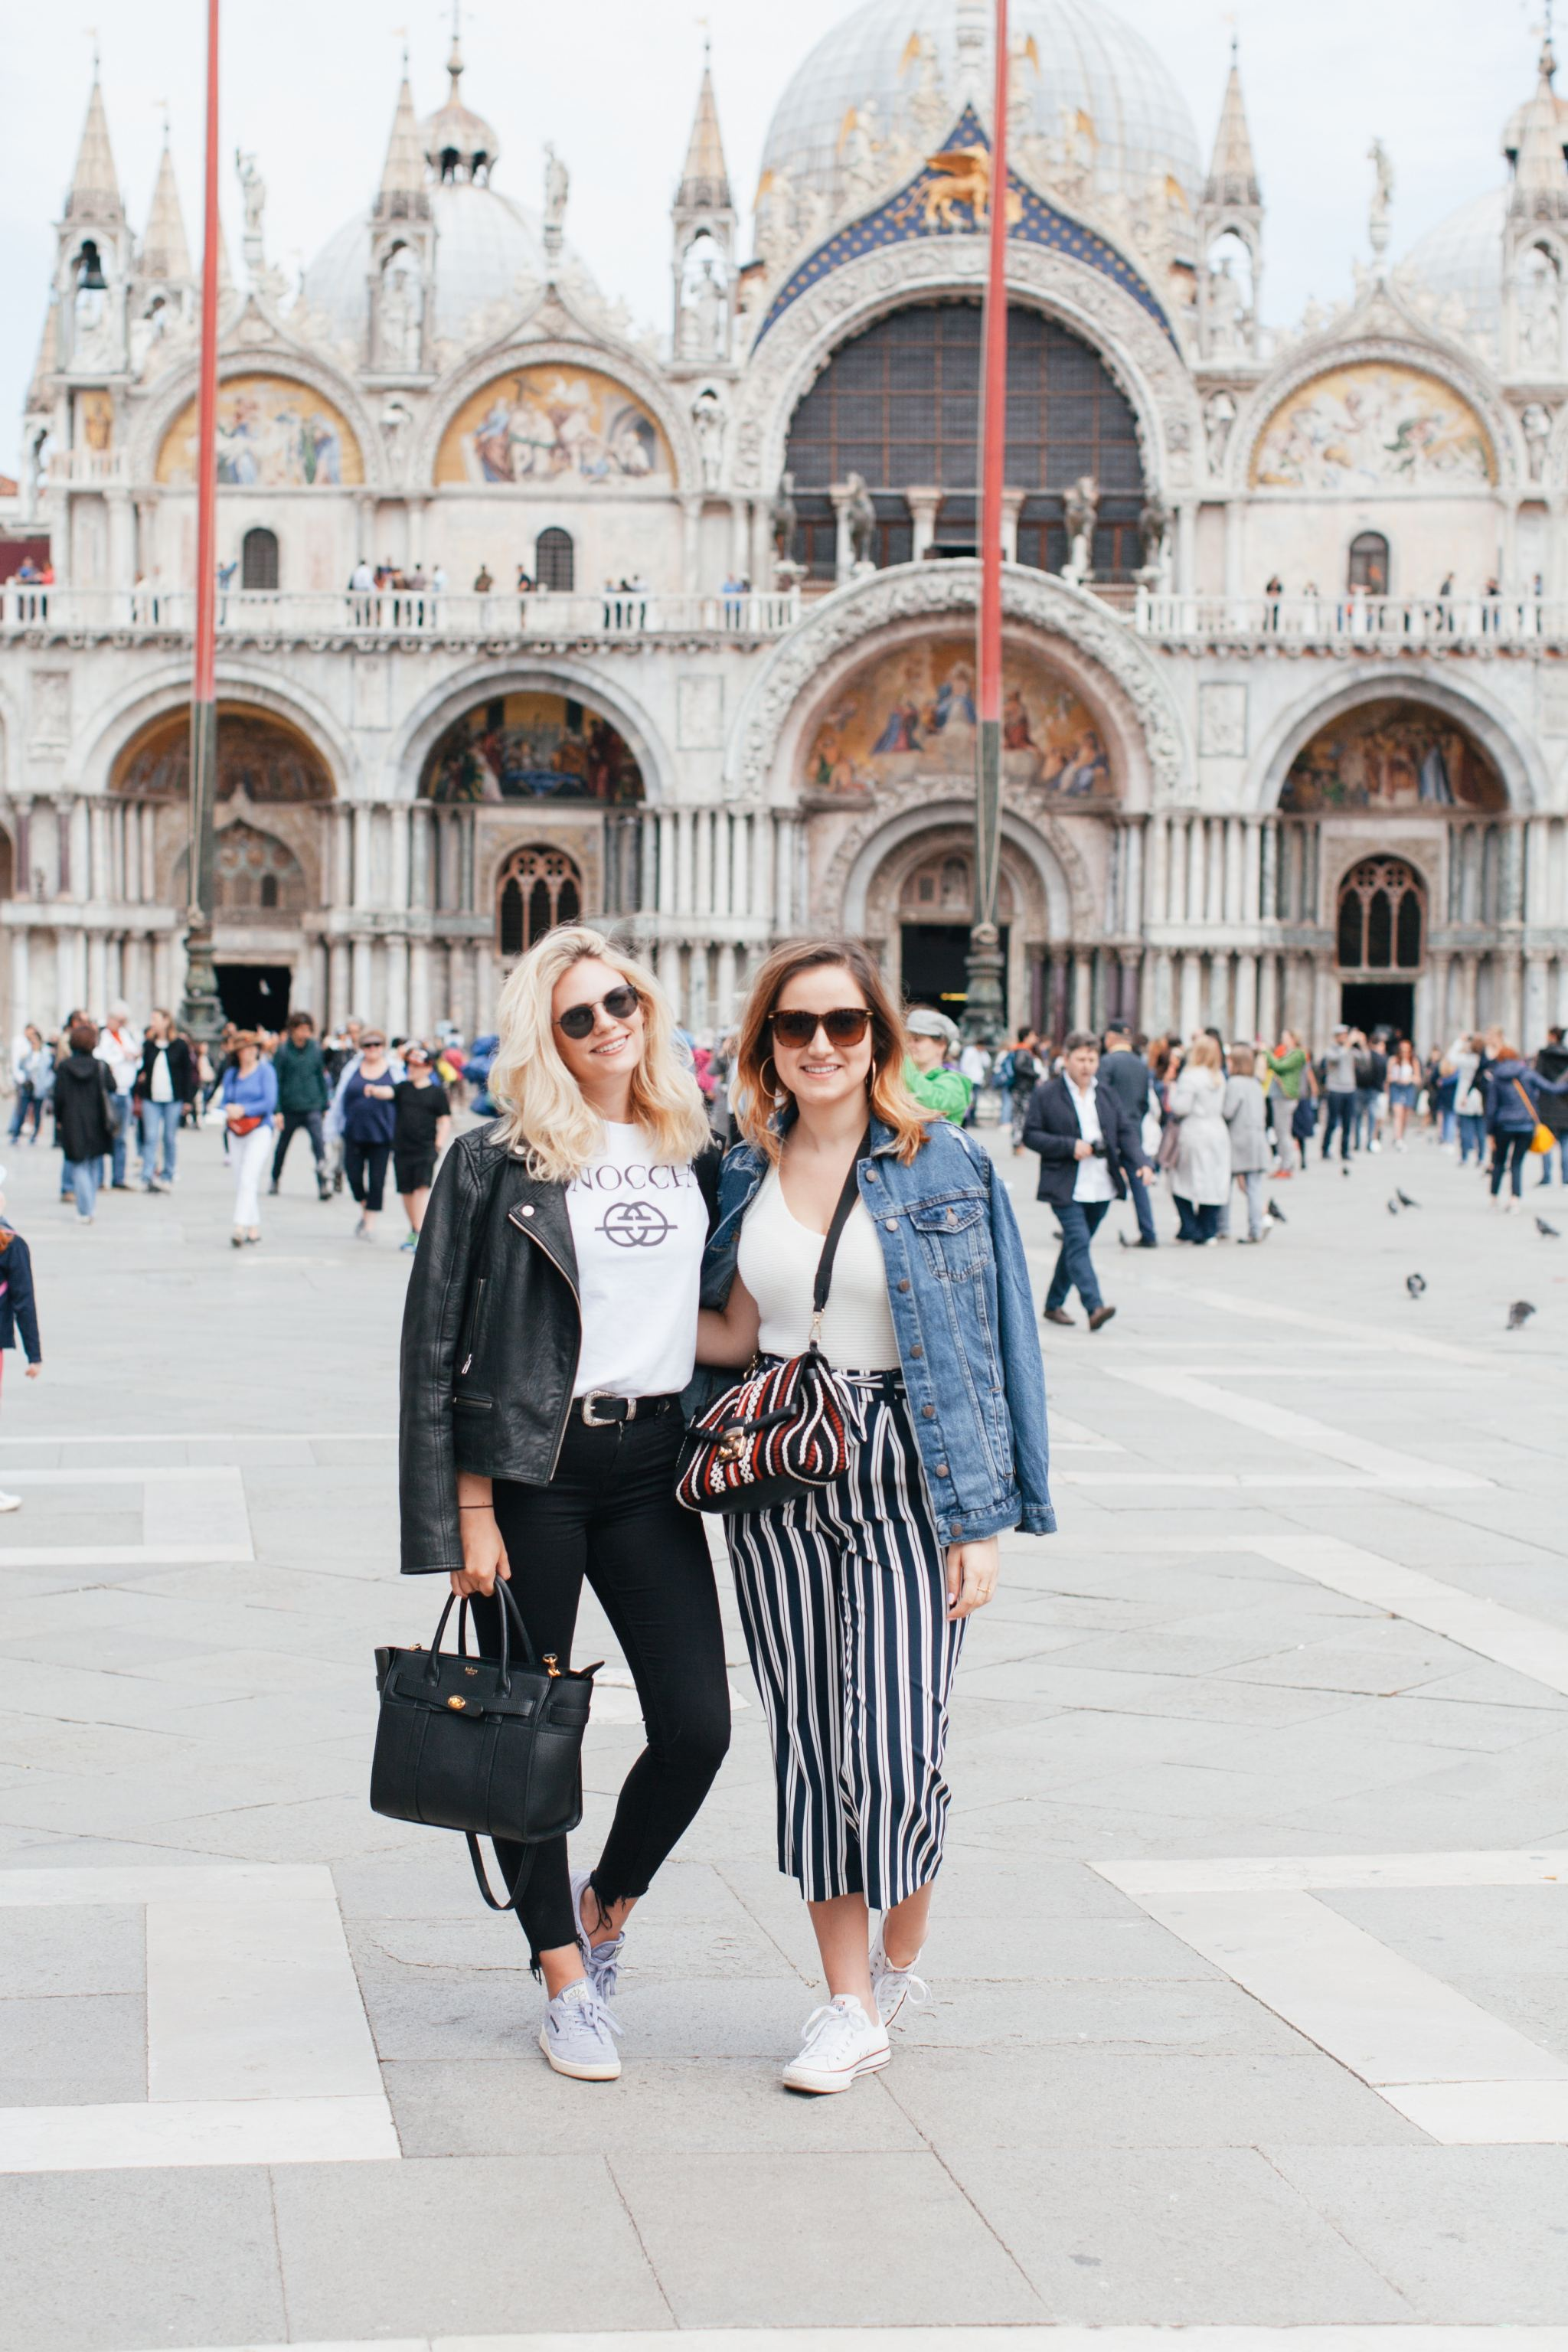 32 hours in Venice with Ask Italian